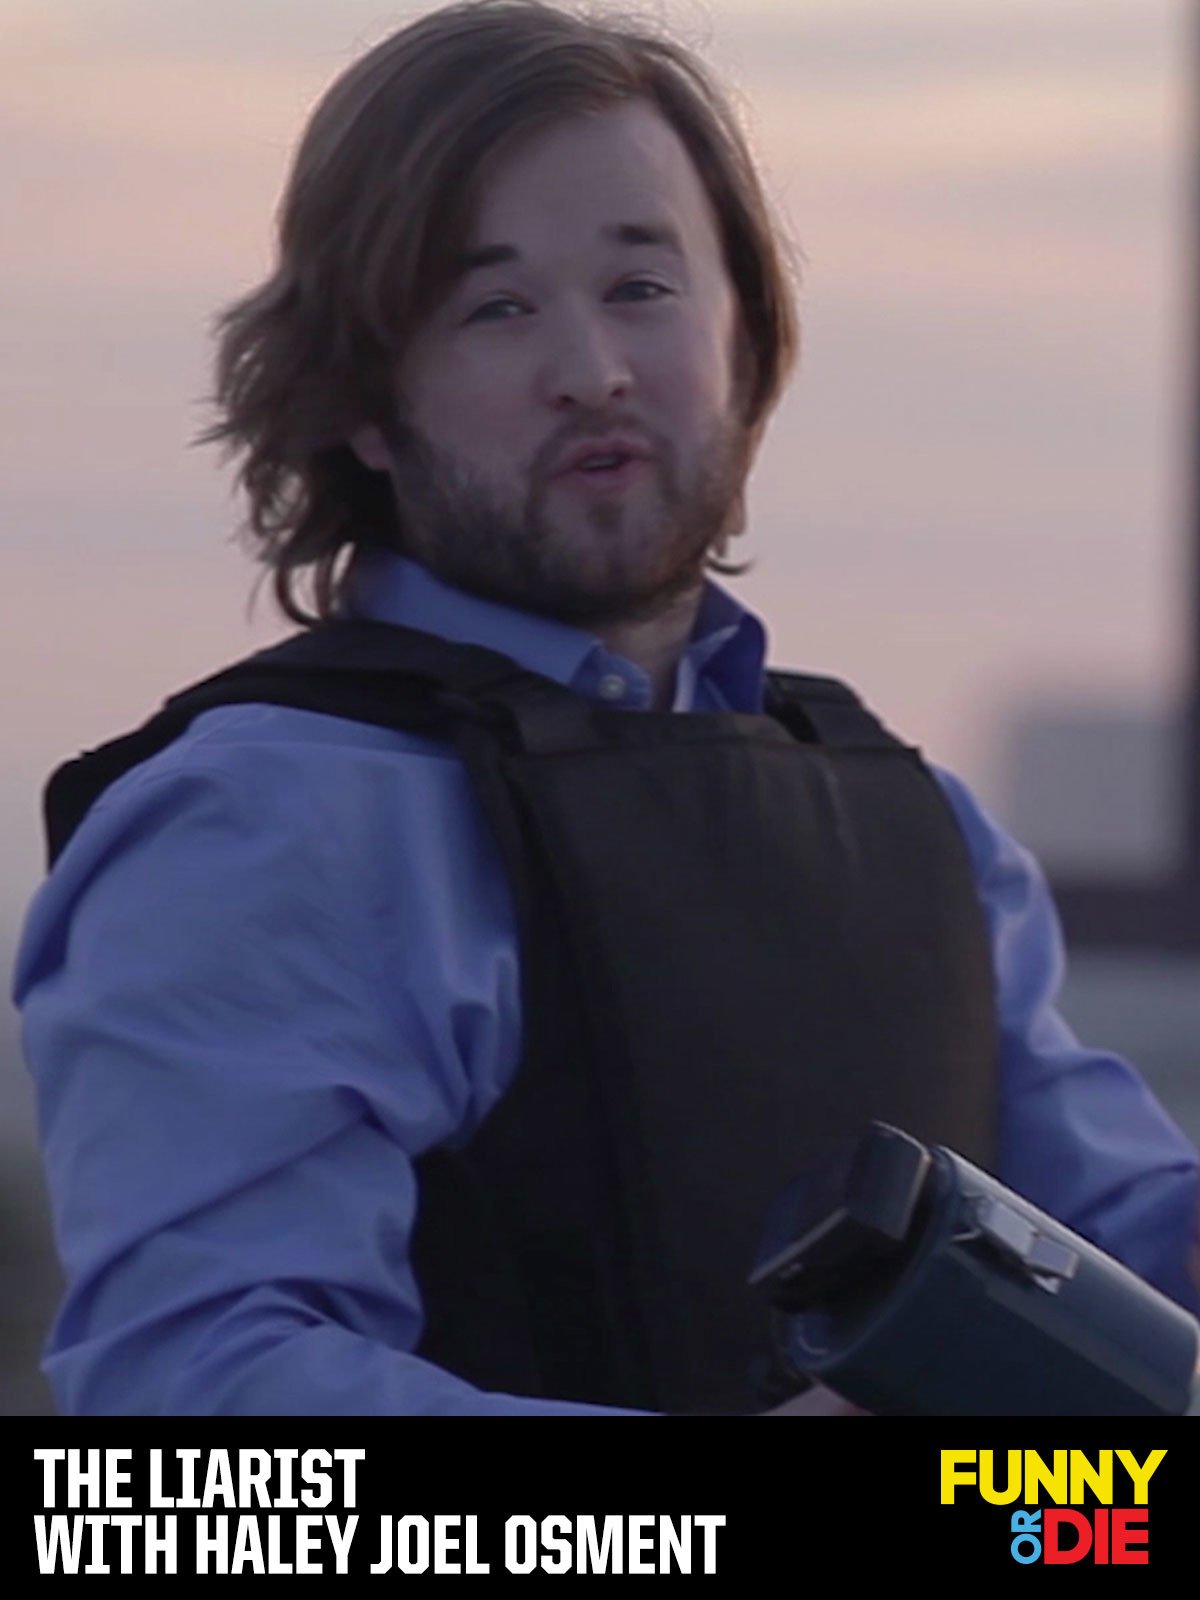 The Liarist with Haley Joel Osment